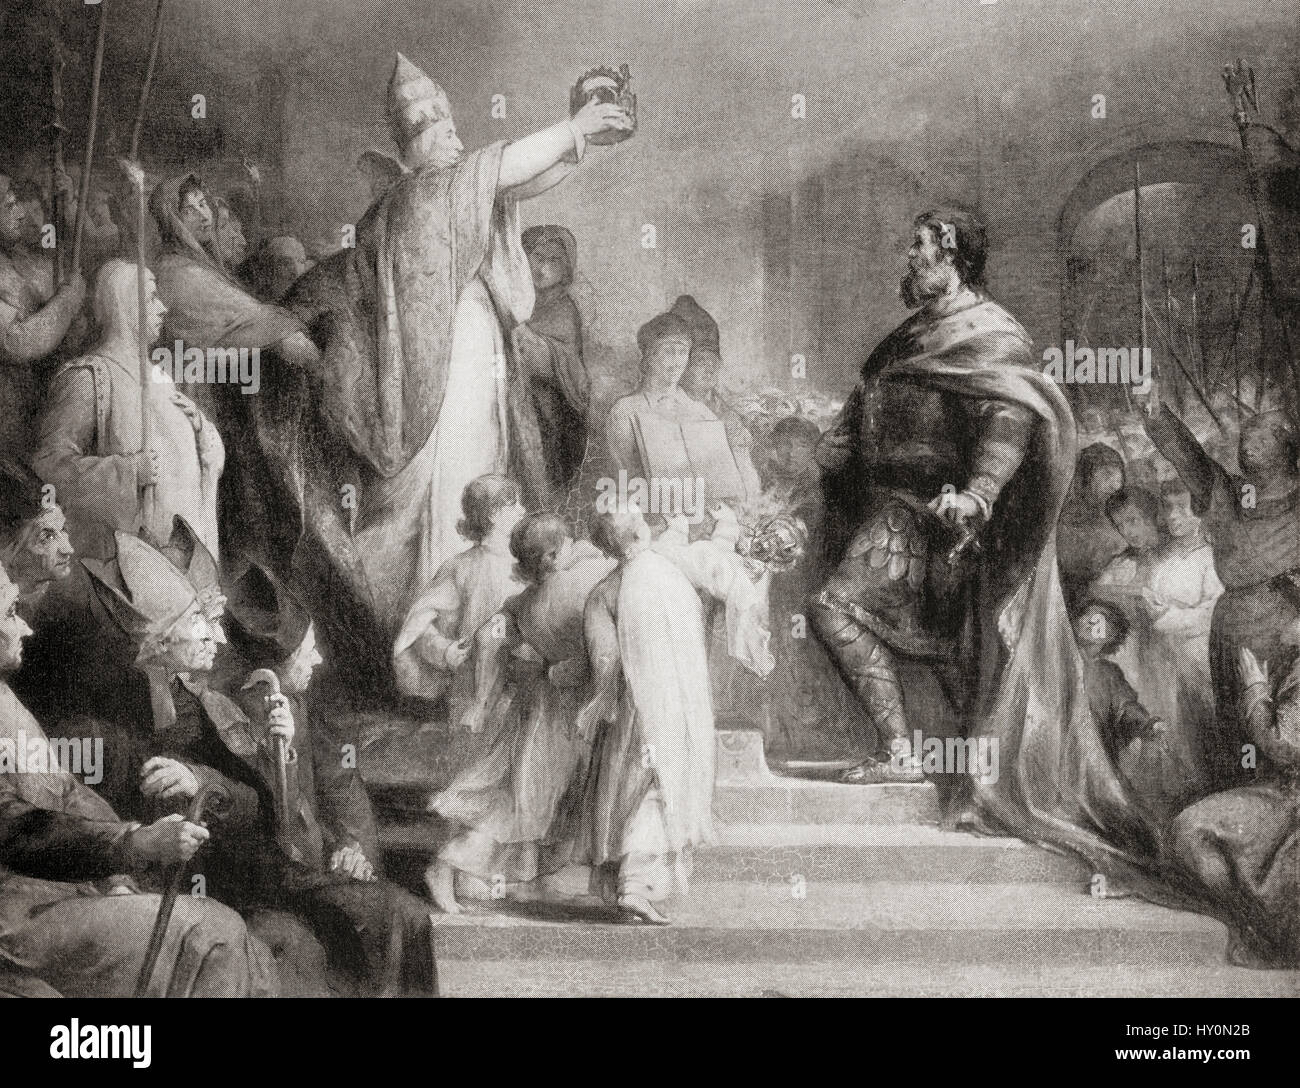 The coronation of Charlemagne as Roman Emperor in 800 by Pope Leo ...